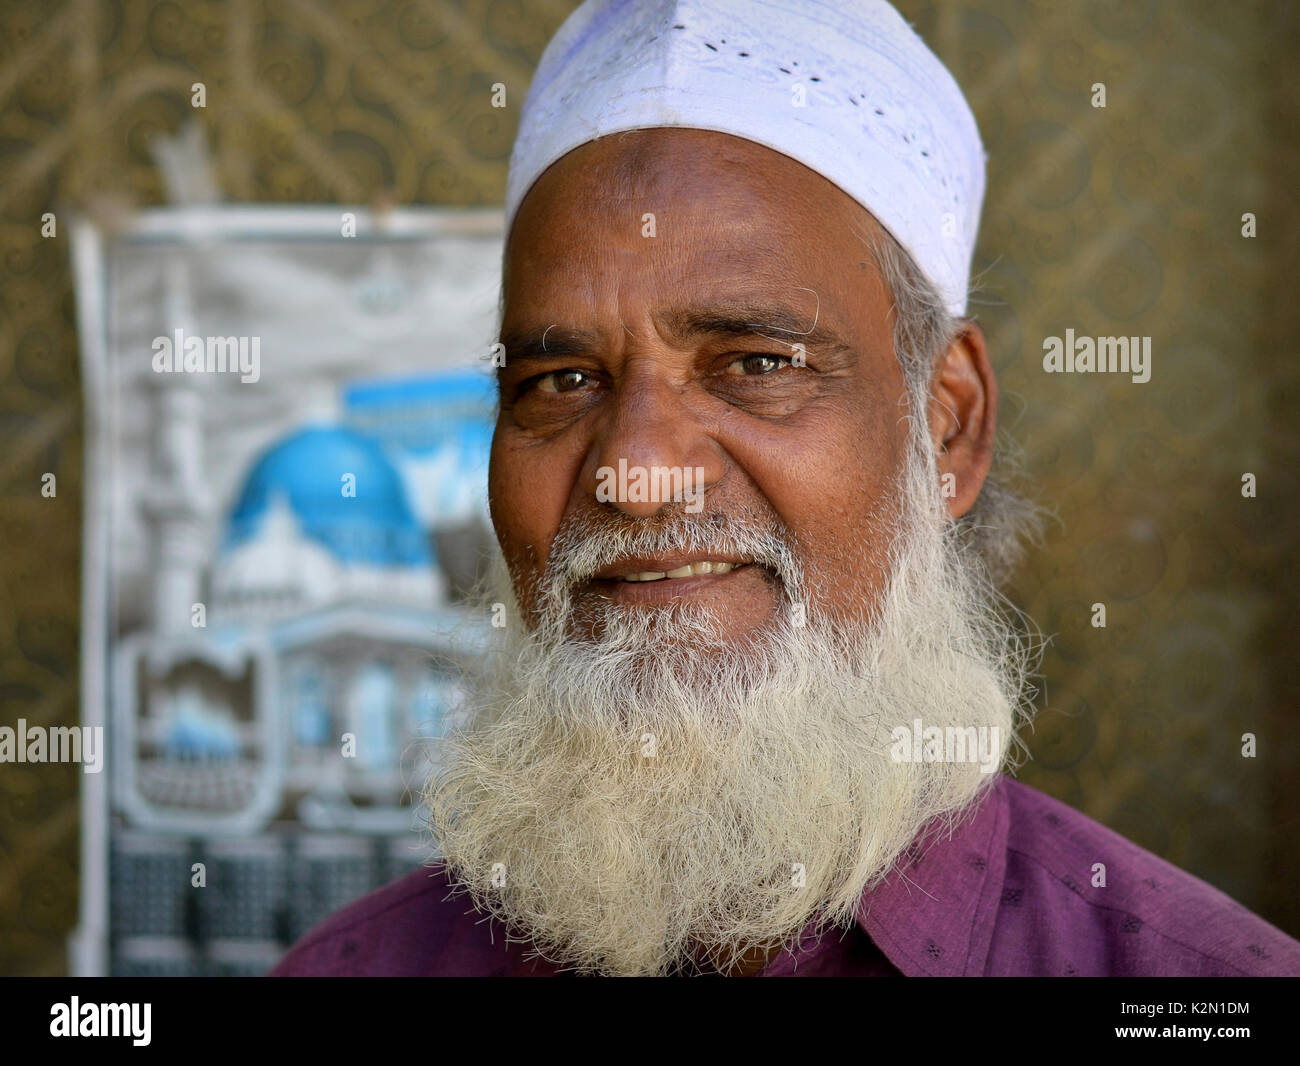 Imam of the small Muslim community at Rayagada/Odisha, India, with Muslim beard and prayer bump on his forehead, - Stock Image